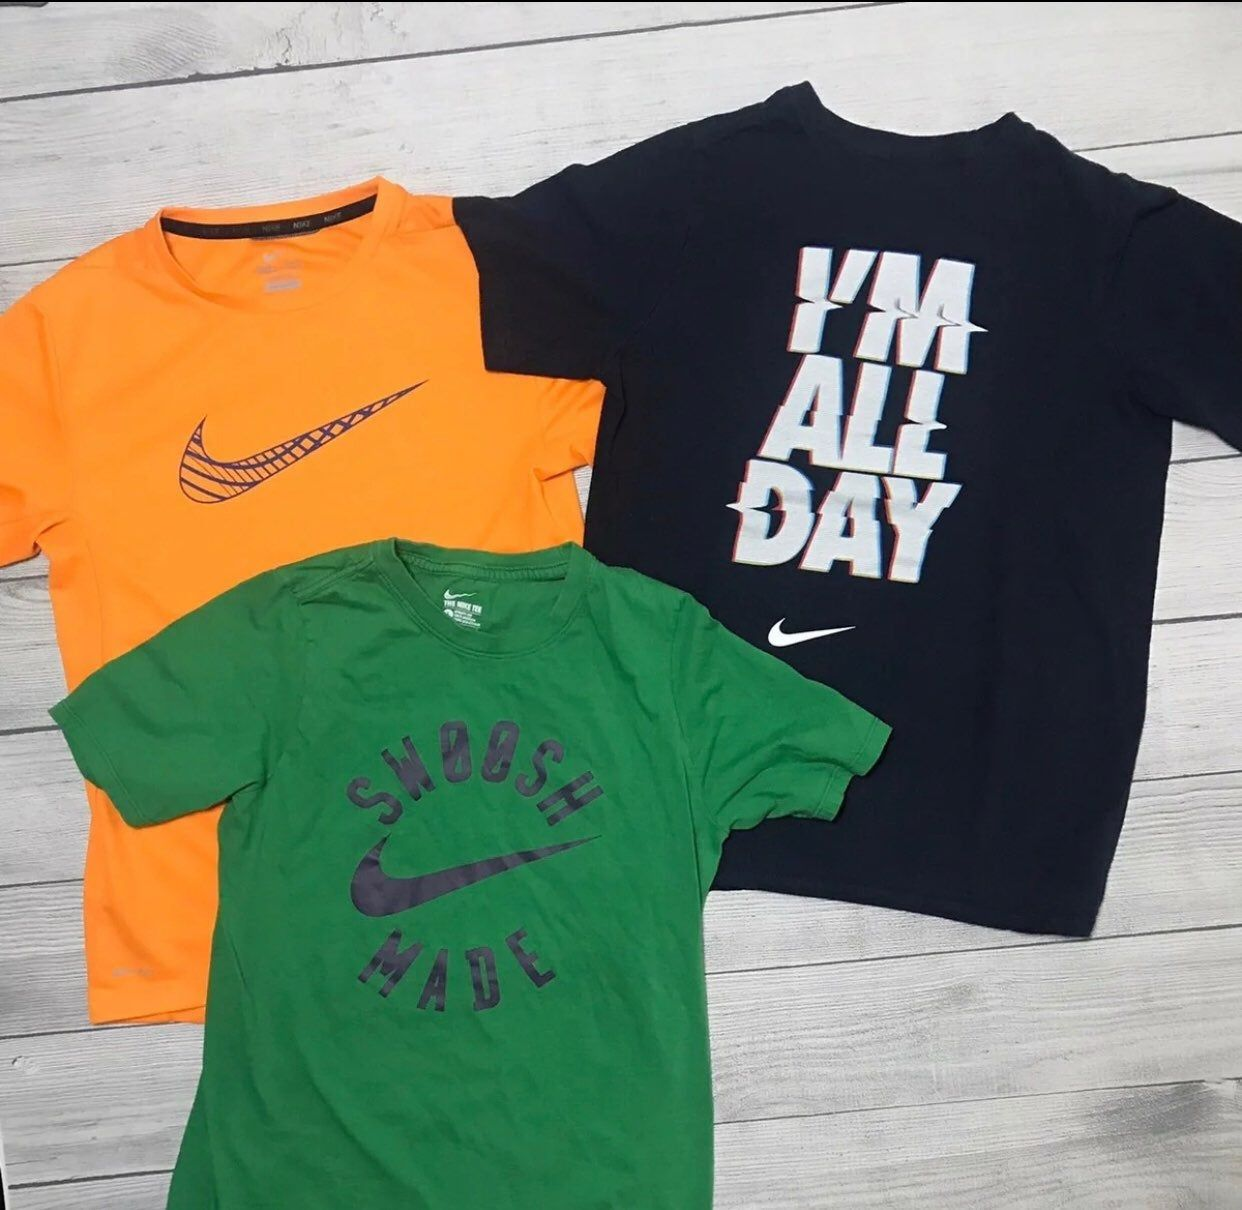 Three Boy S Nike T Shirts Size Large 14 16 Two Cotton Navy Blue And Green And 1 Orange Dri Fit All In Good Condition From A Shirts Shirt Size Nike Tshirt